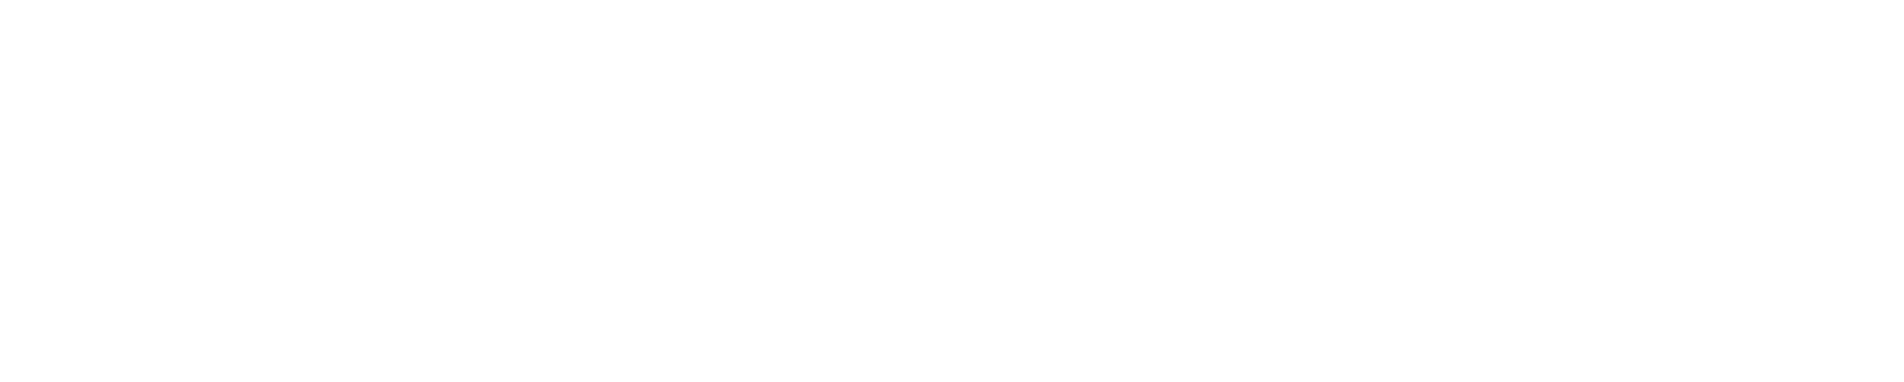 legalpartner-contact